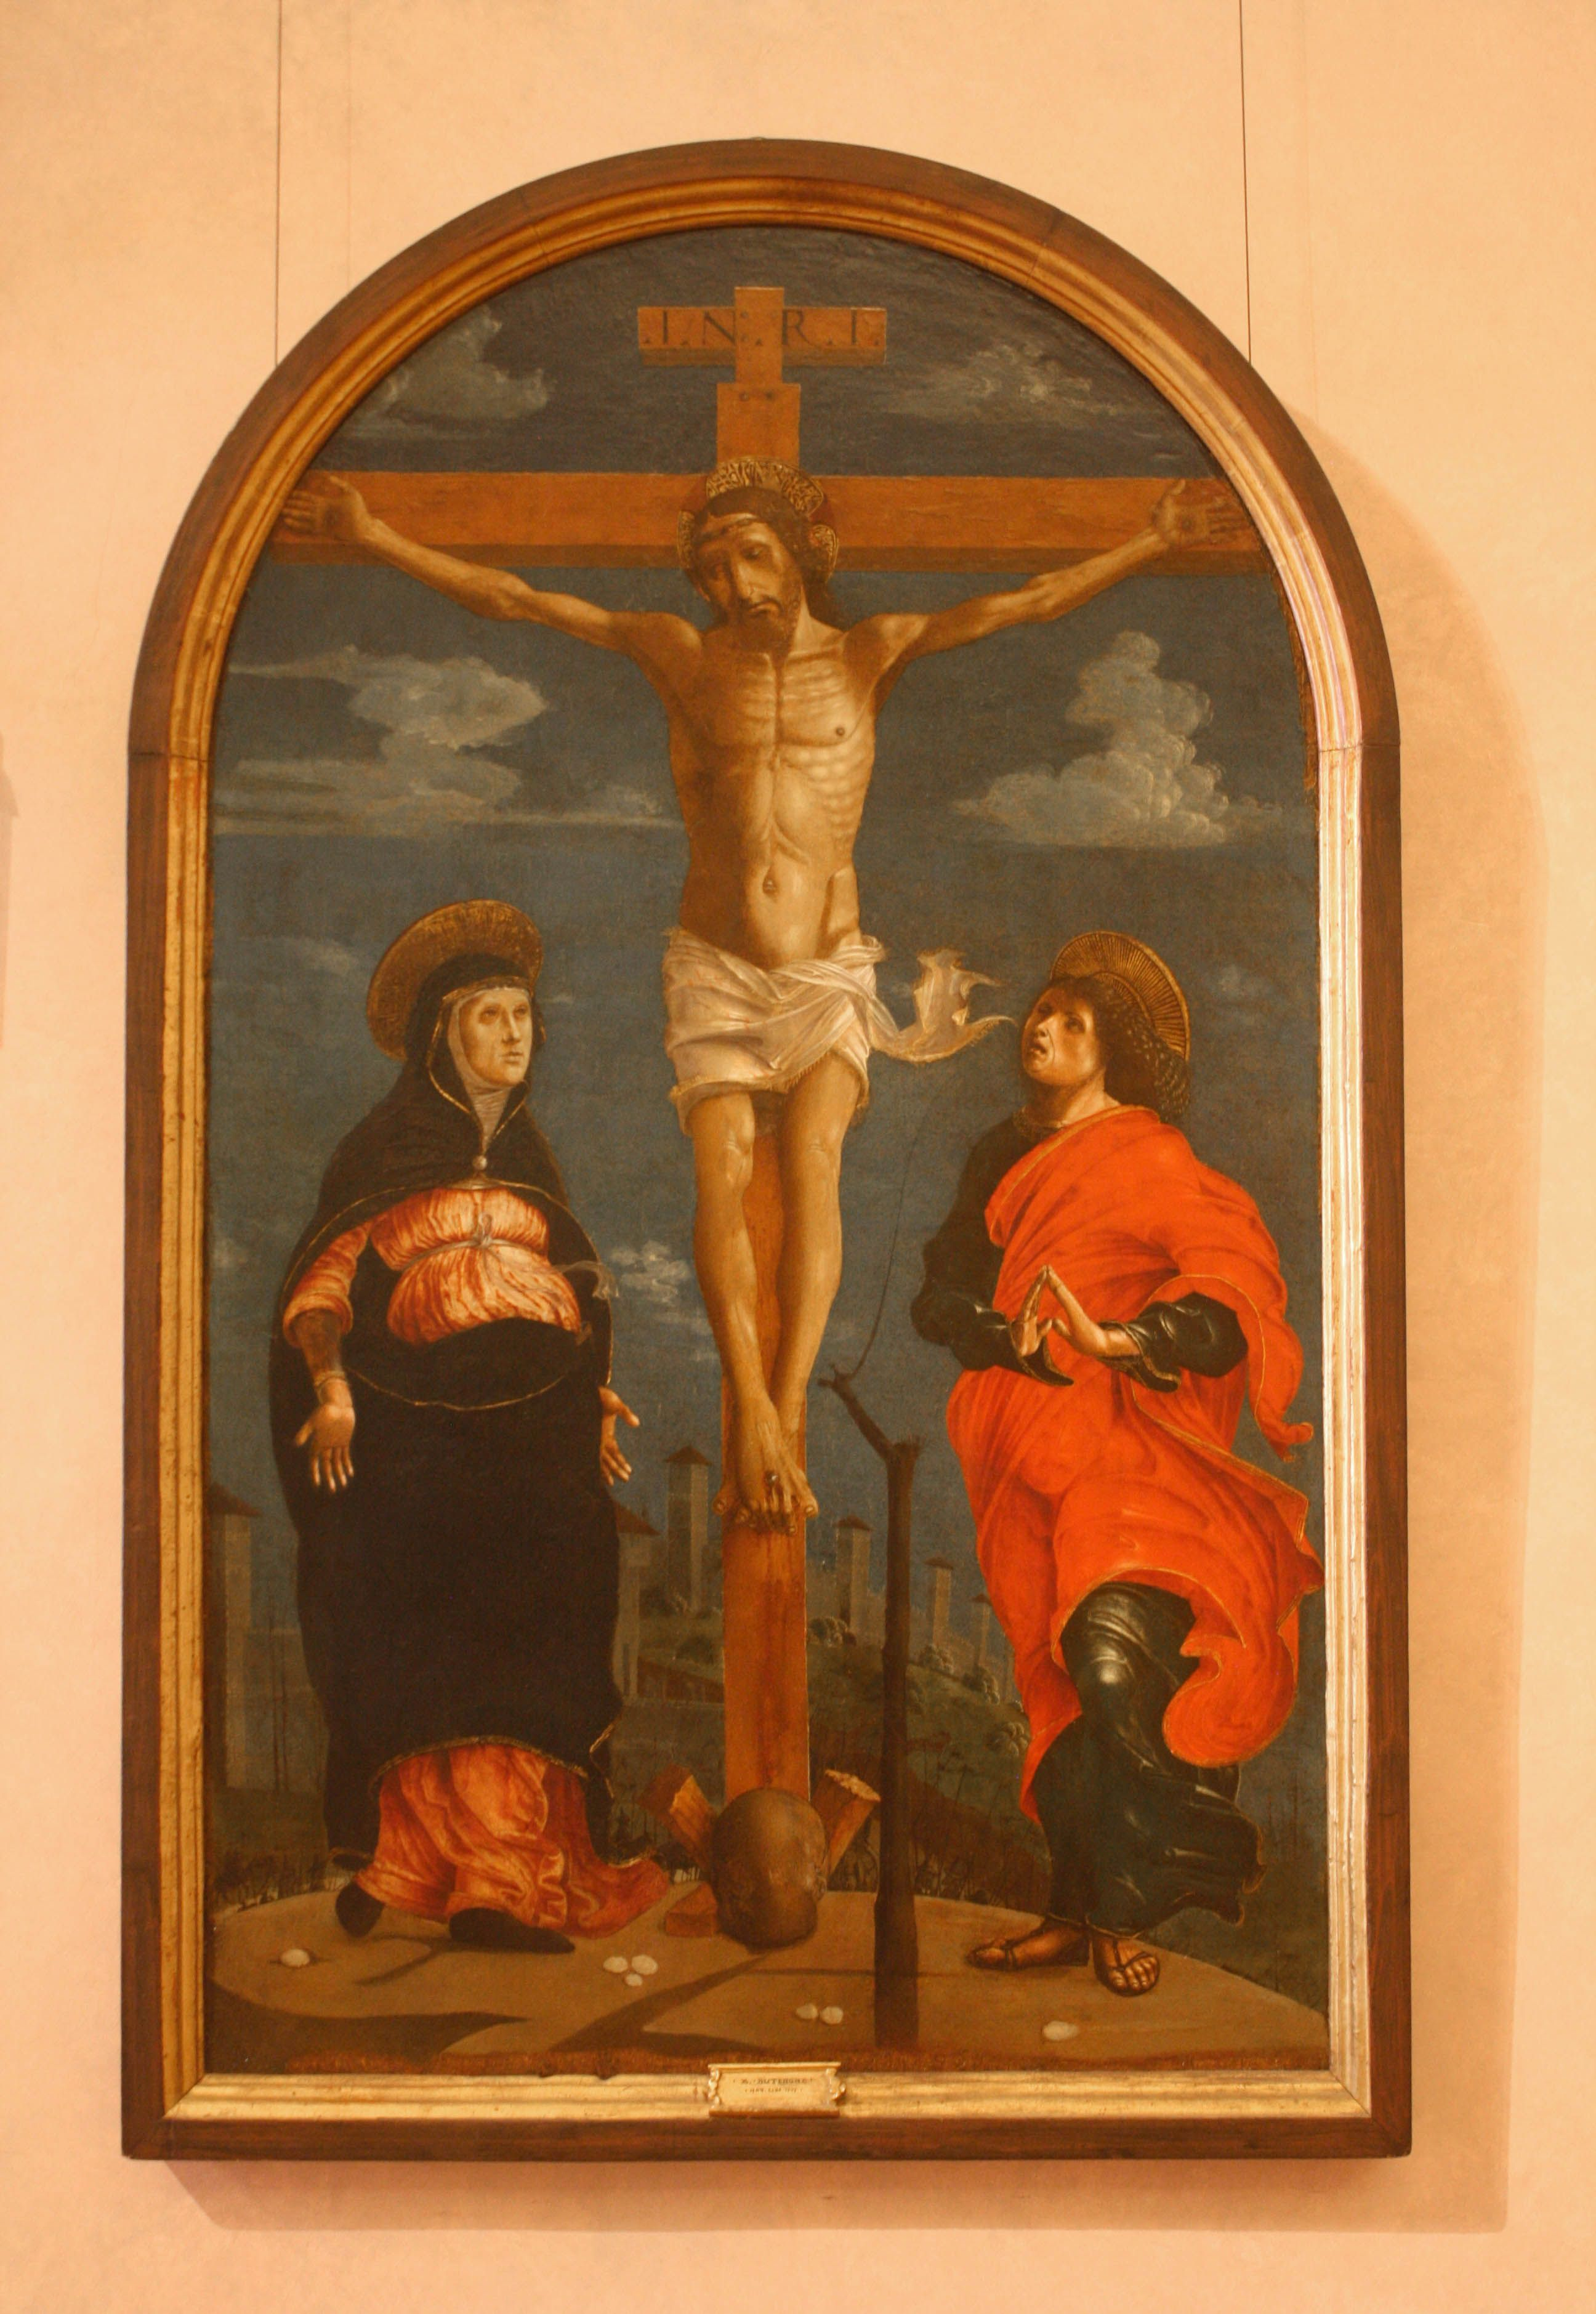 National Gallery of Antique Art, Rome, Italy www.stephentravels.com/top5/crucifixes